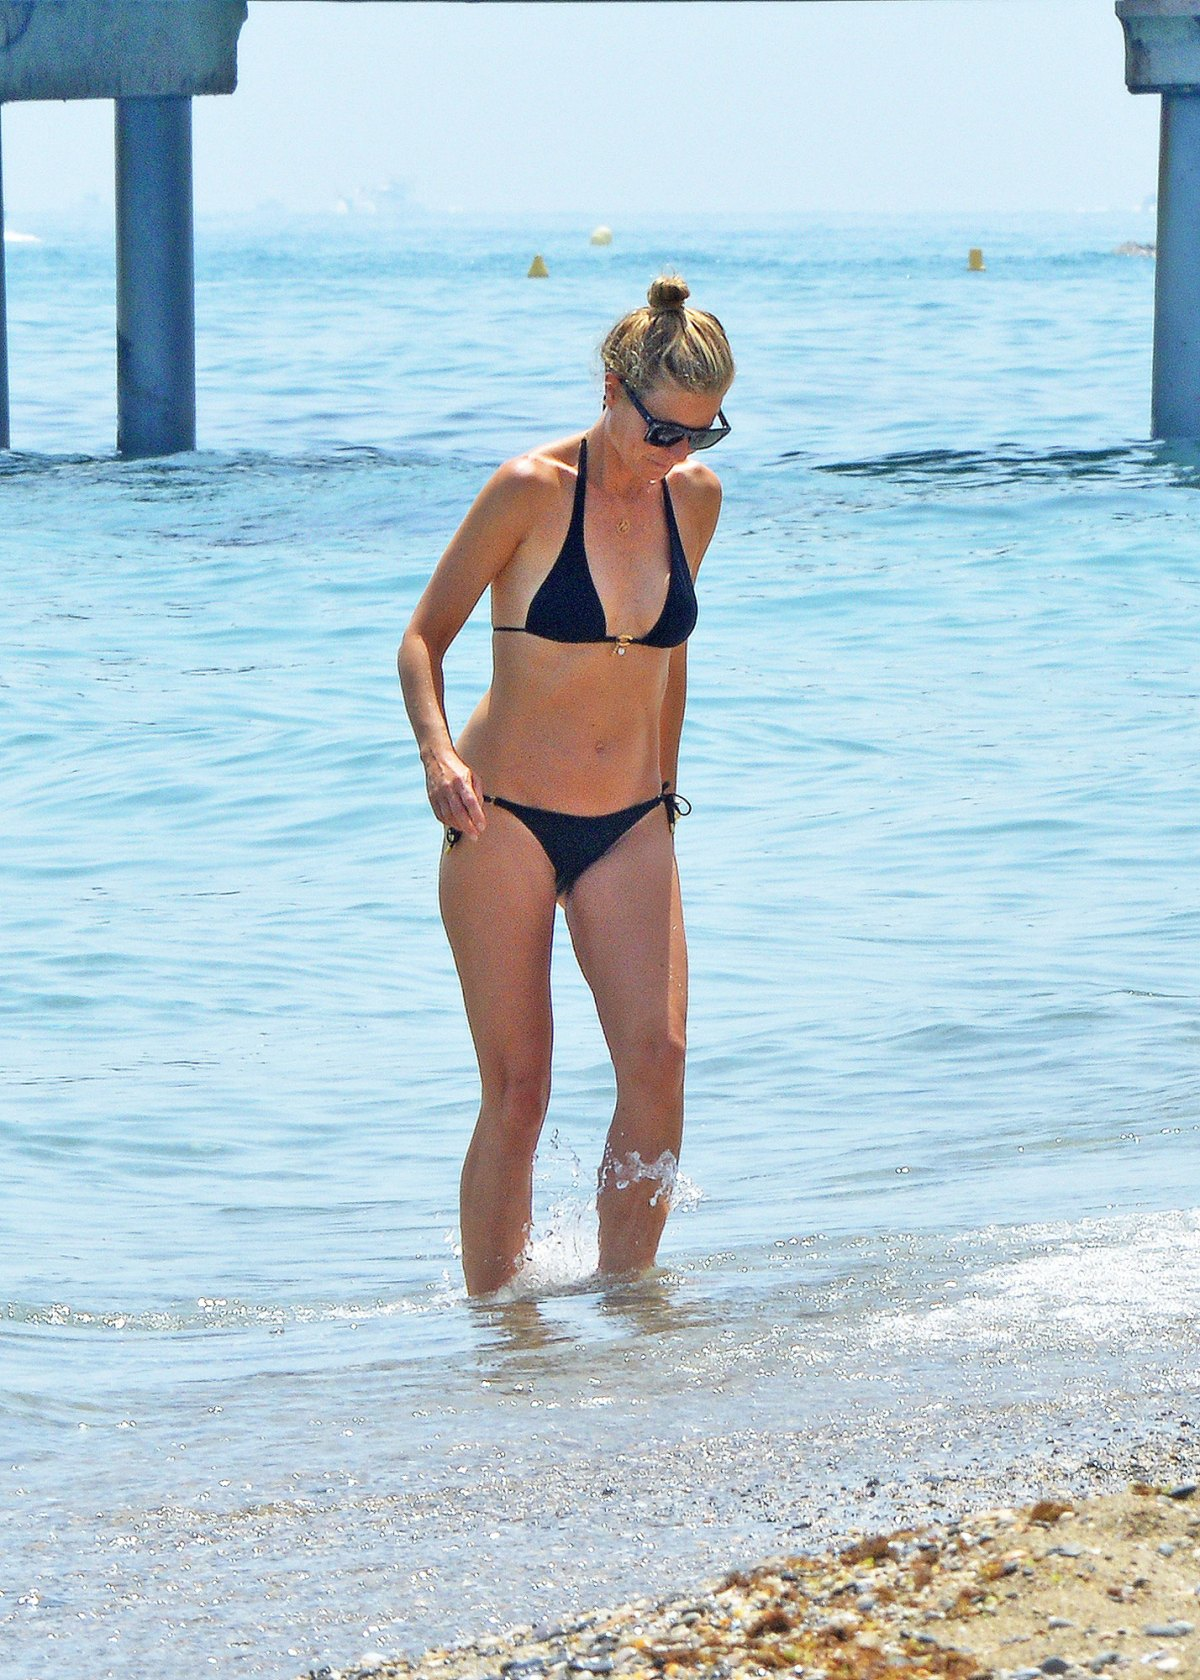 718416f41b The Hottest Celebs Over 40 in Swimsuits: Photos and Fitness Tips